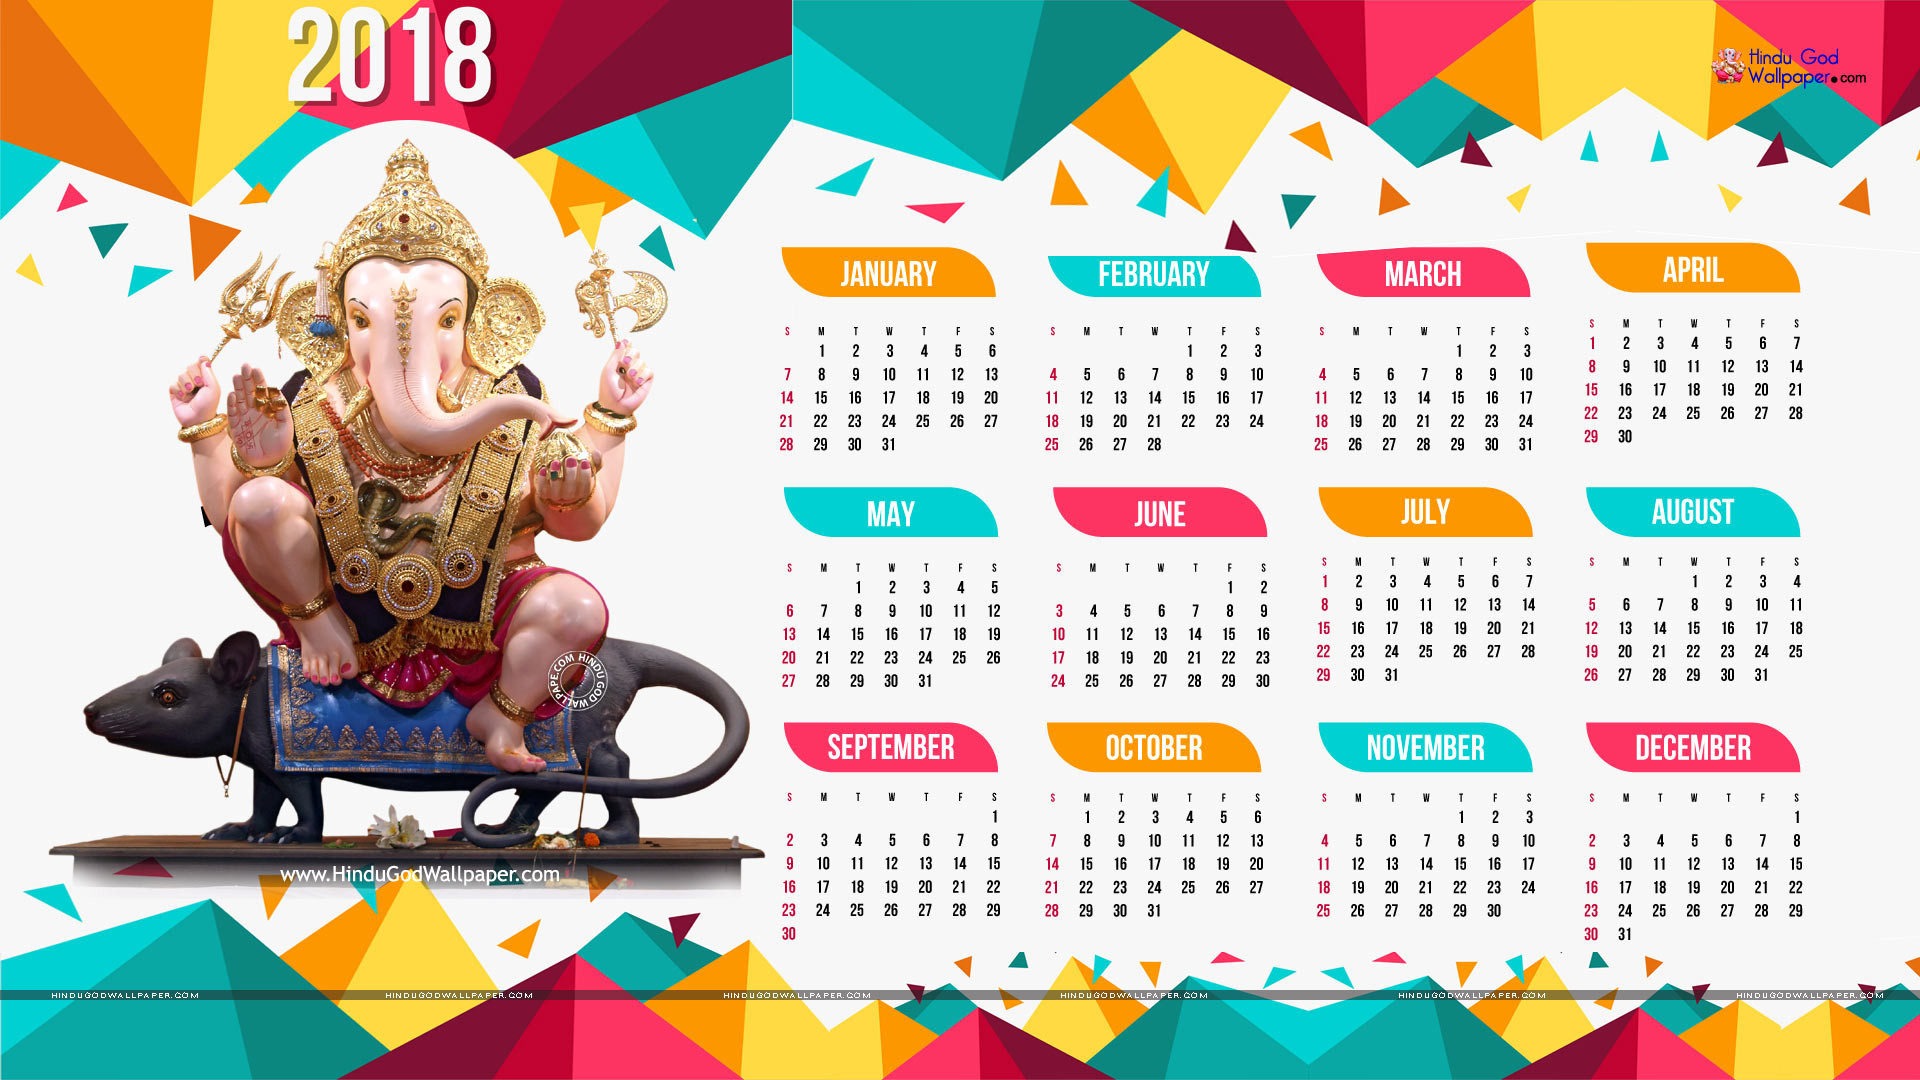 Wallpapers With Calendar 2018 52 Pictures